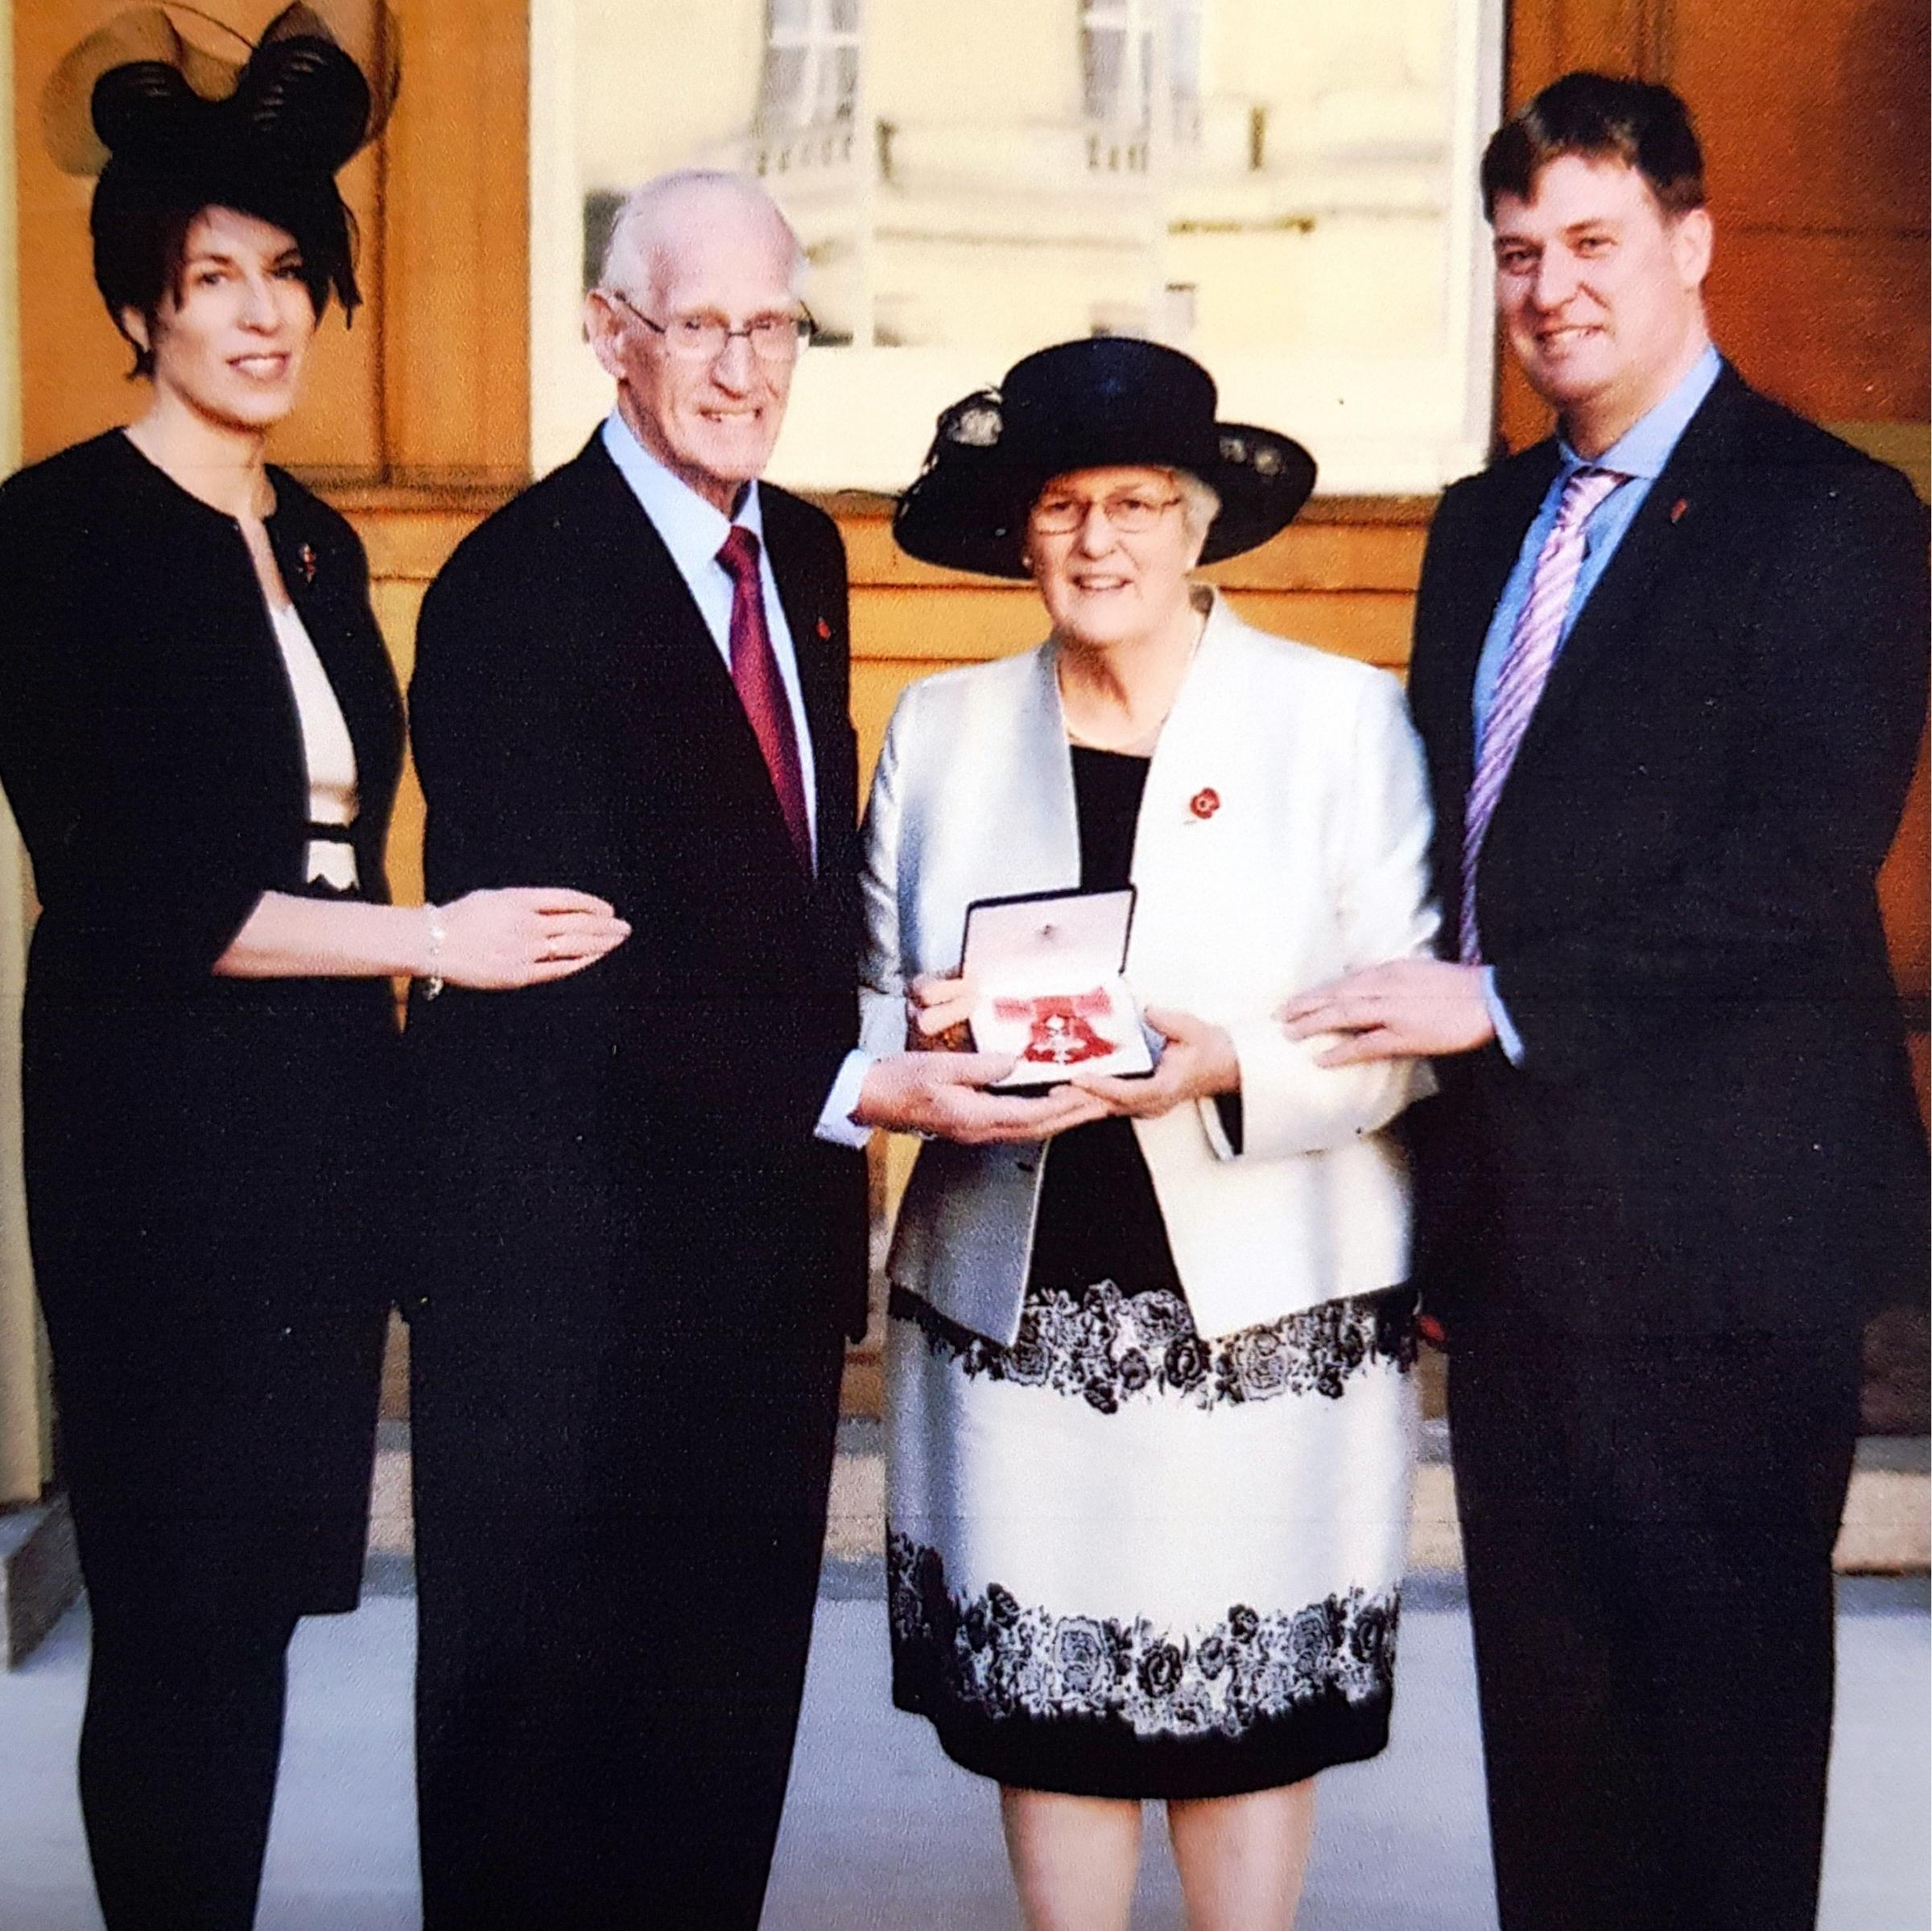 June Cook with her daughter Helen, husband Stuart and son John